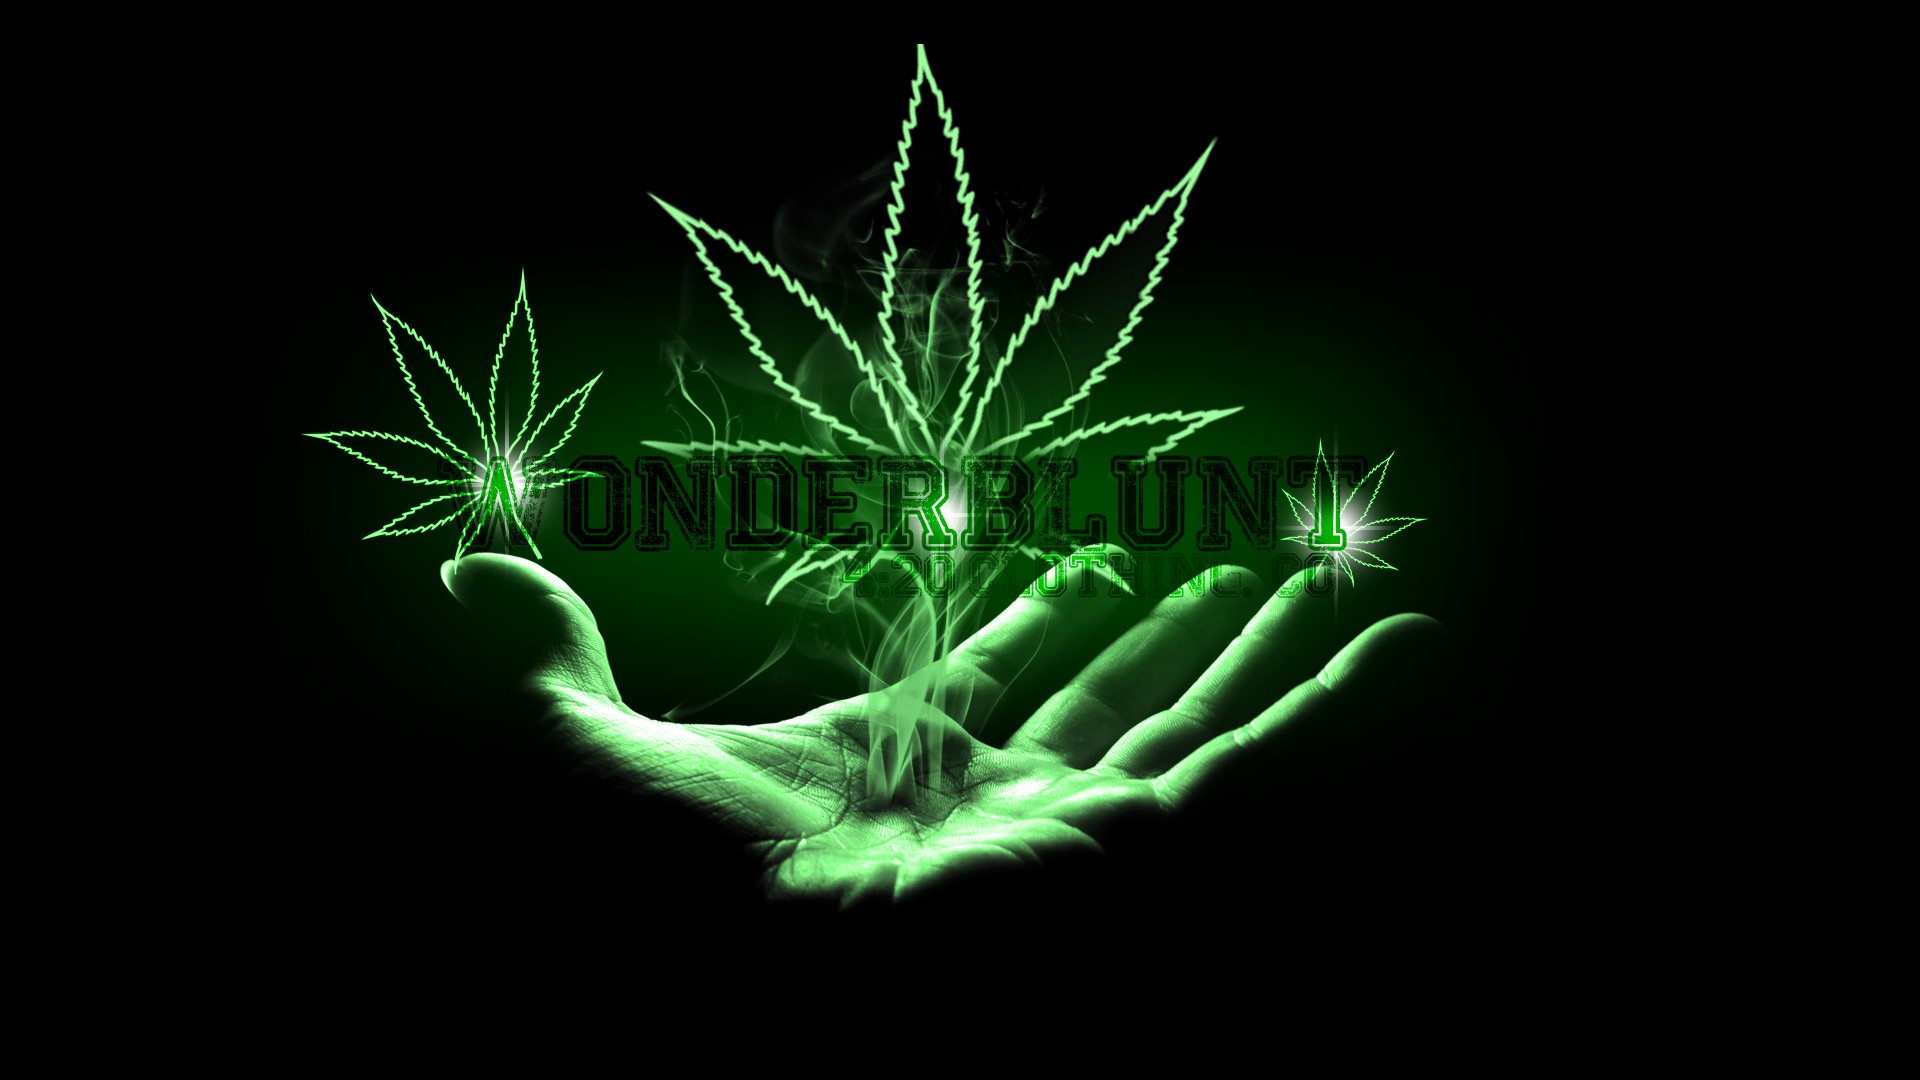 Cool Weed Wallpapers   Desktop Backgrounds 1920x1080